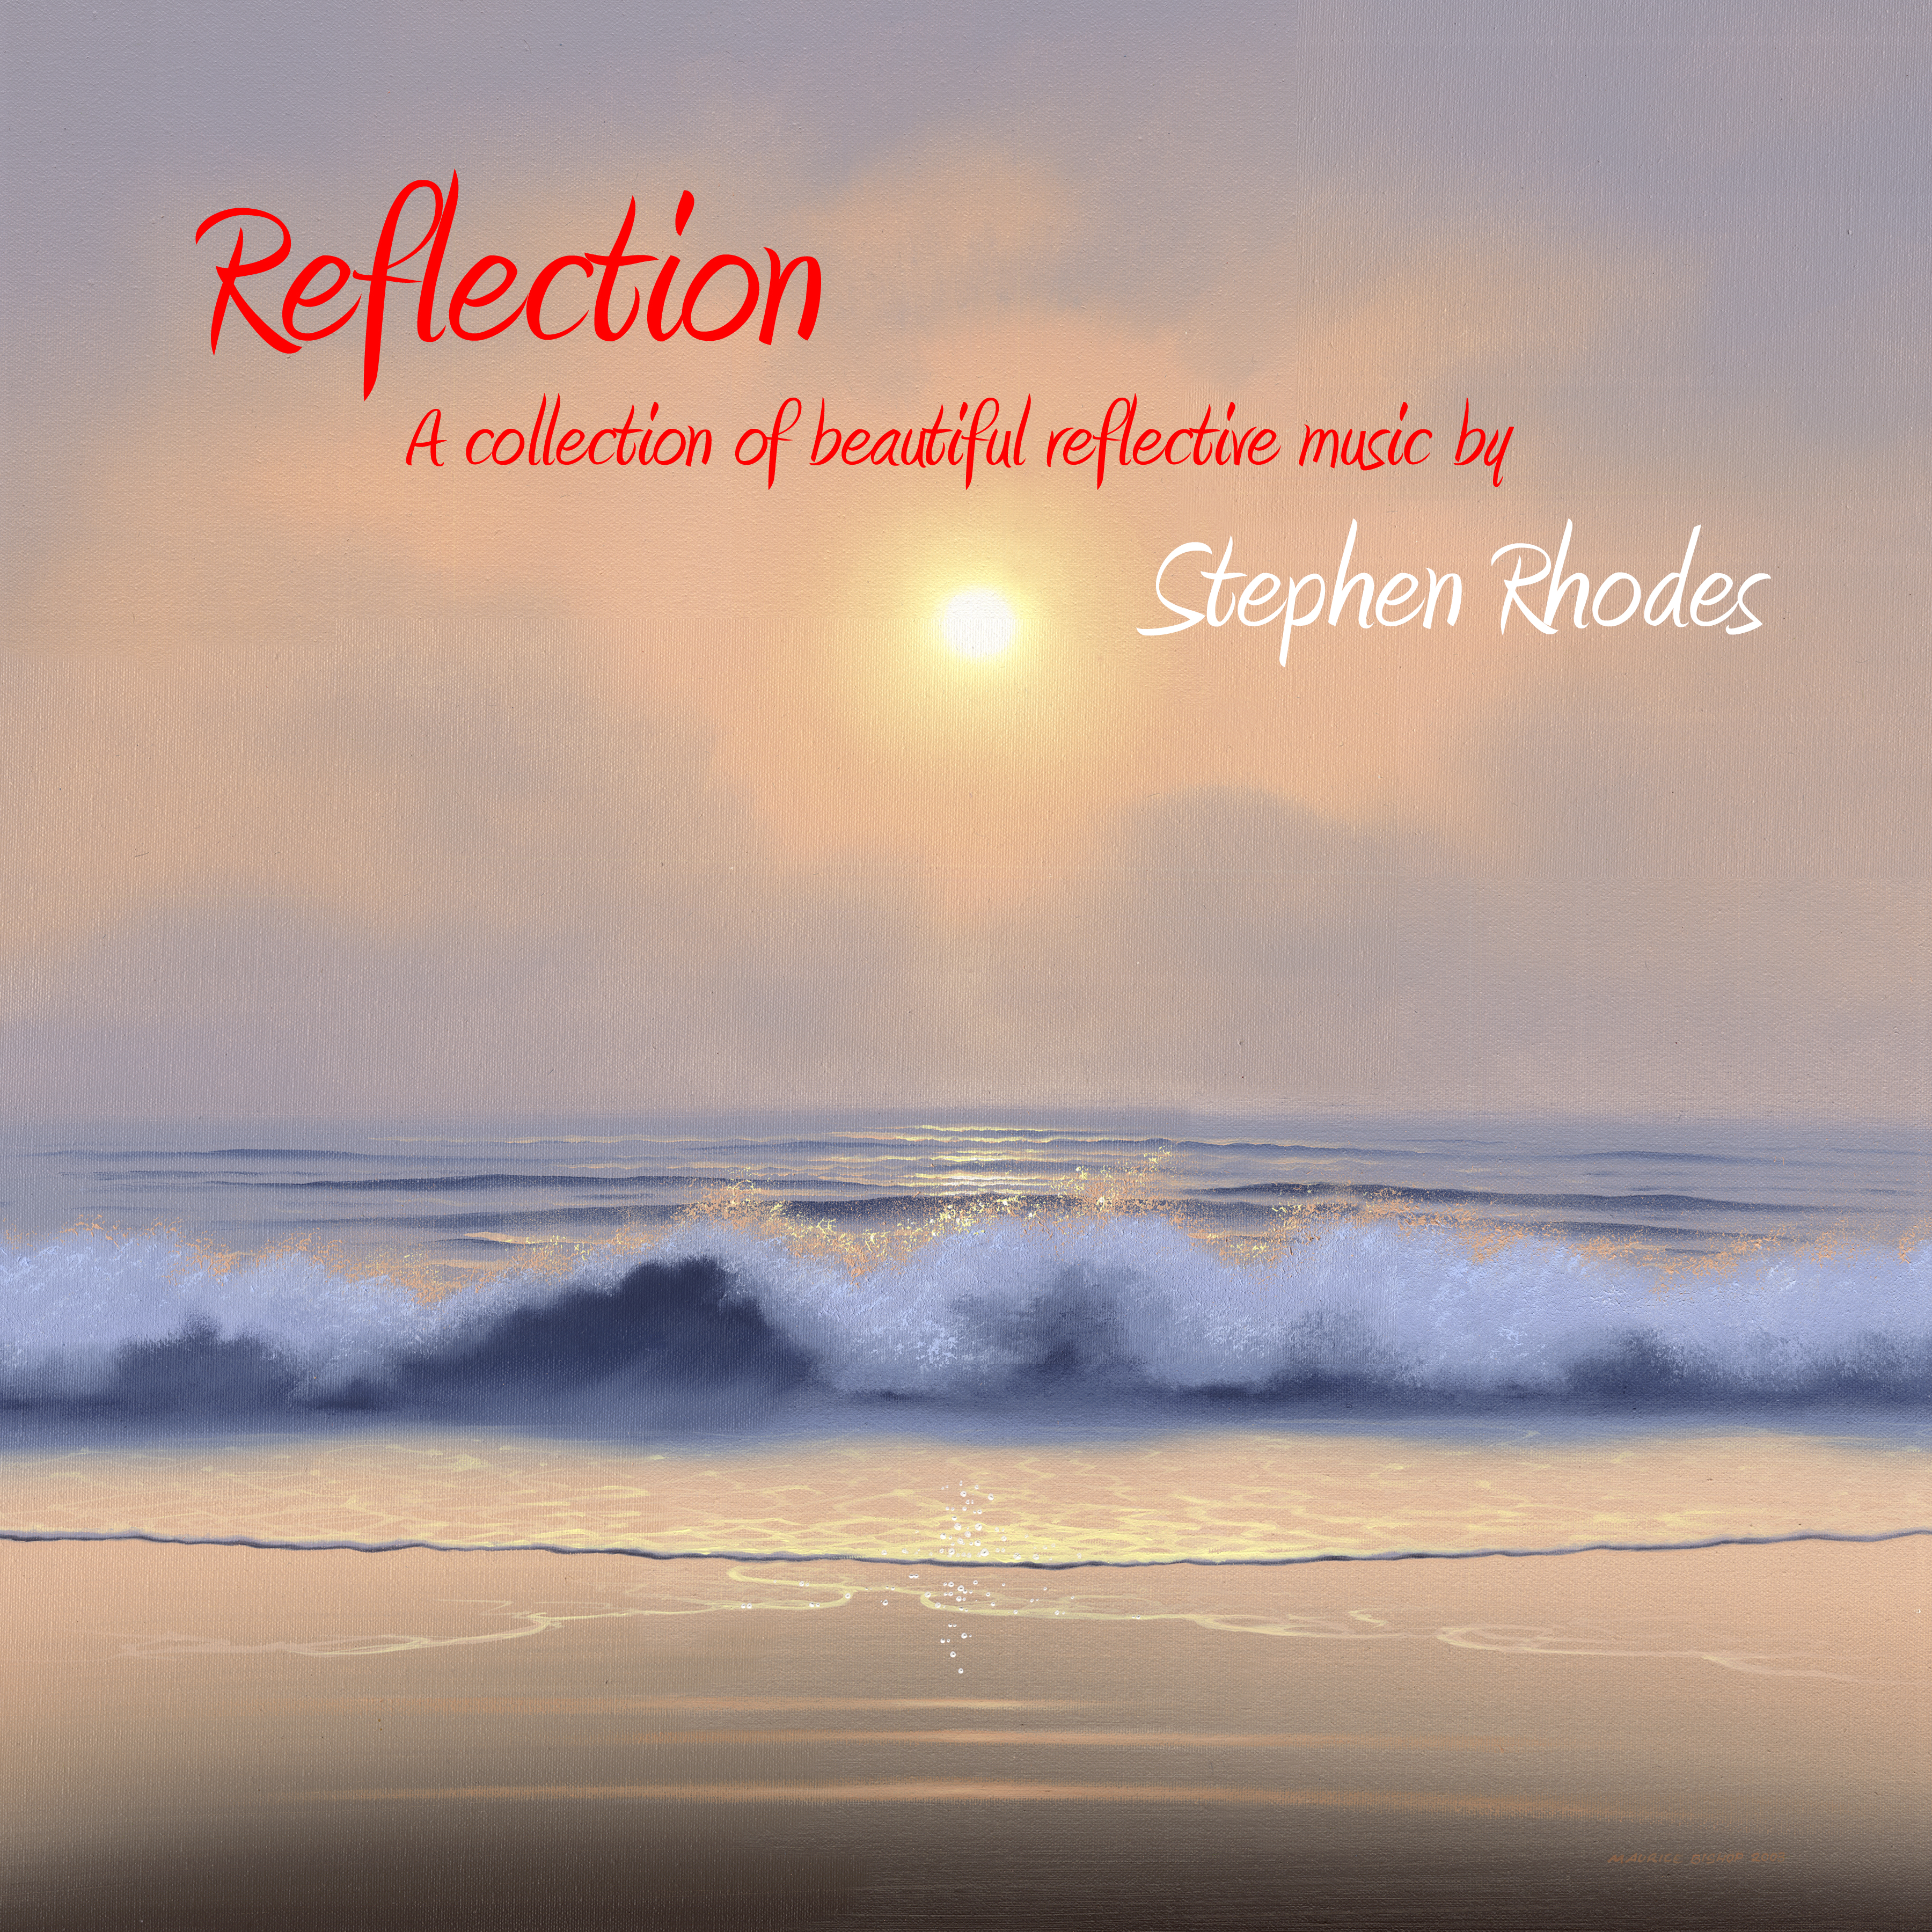 Reflection by Stephen Rhodes